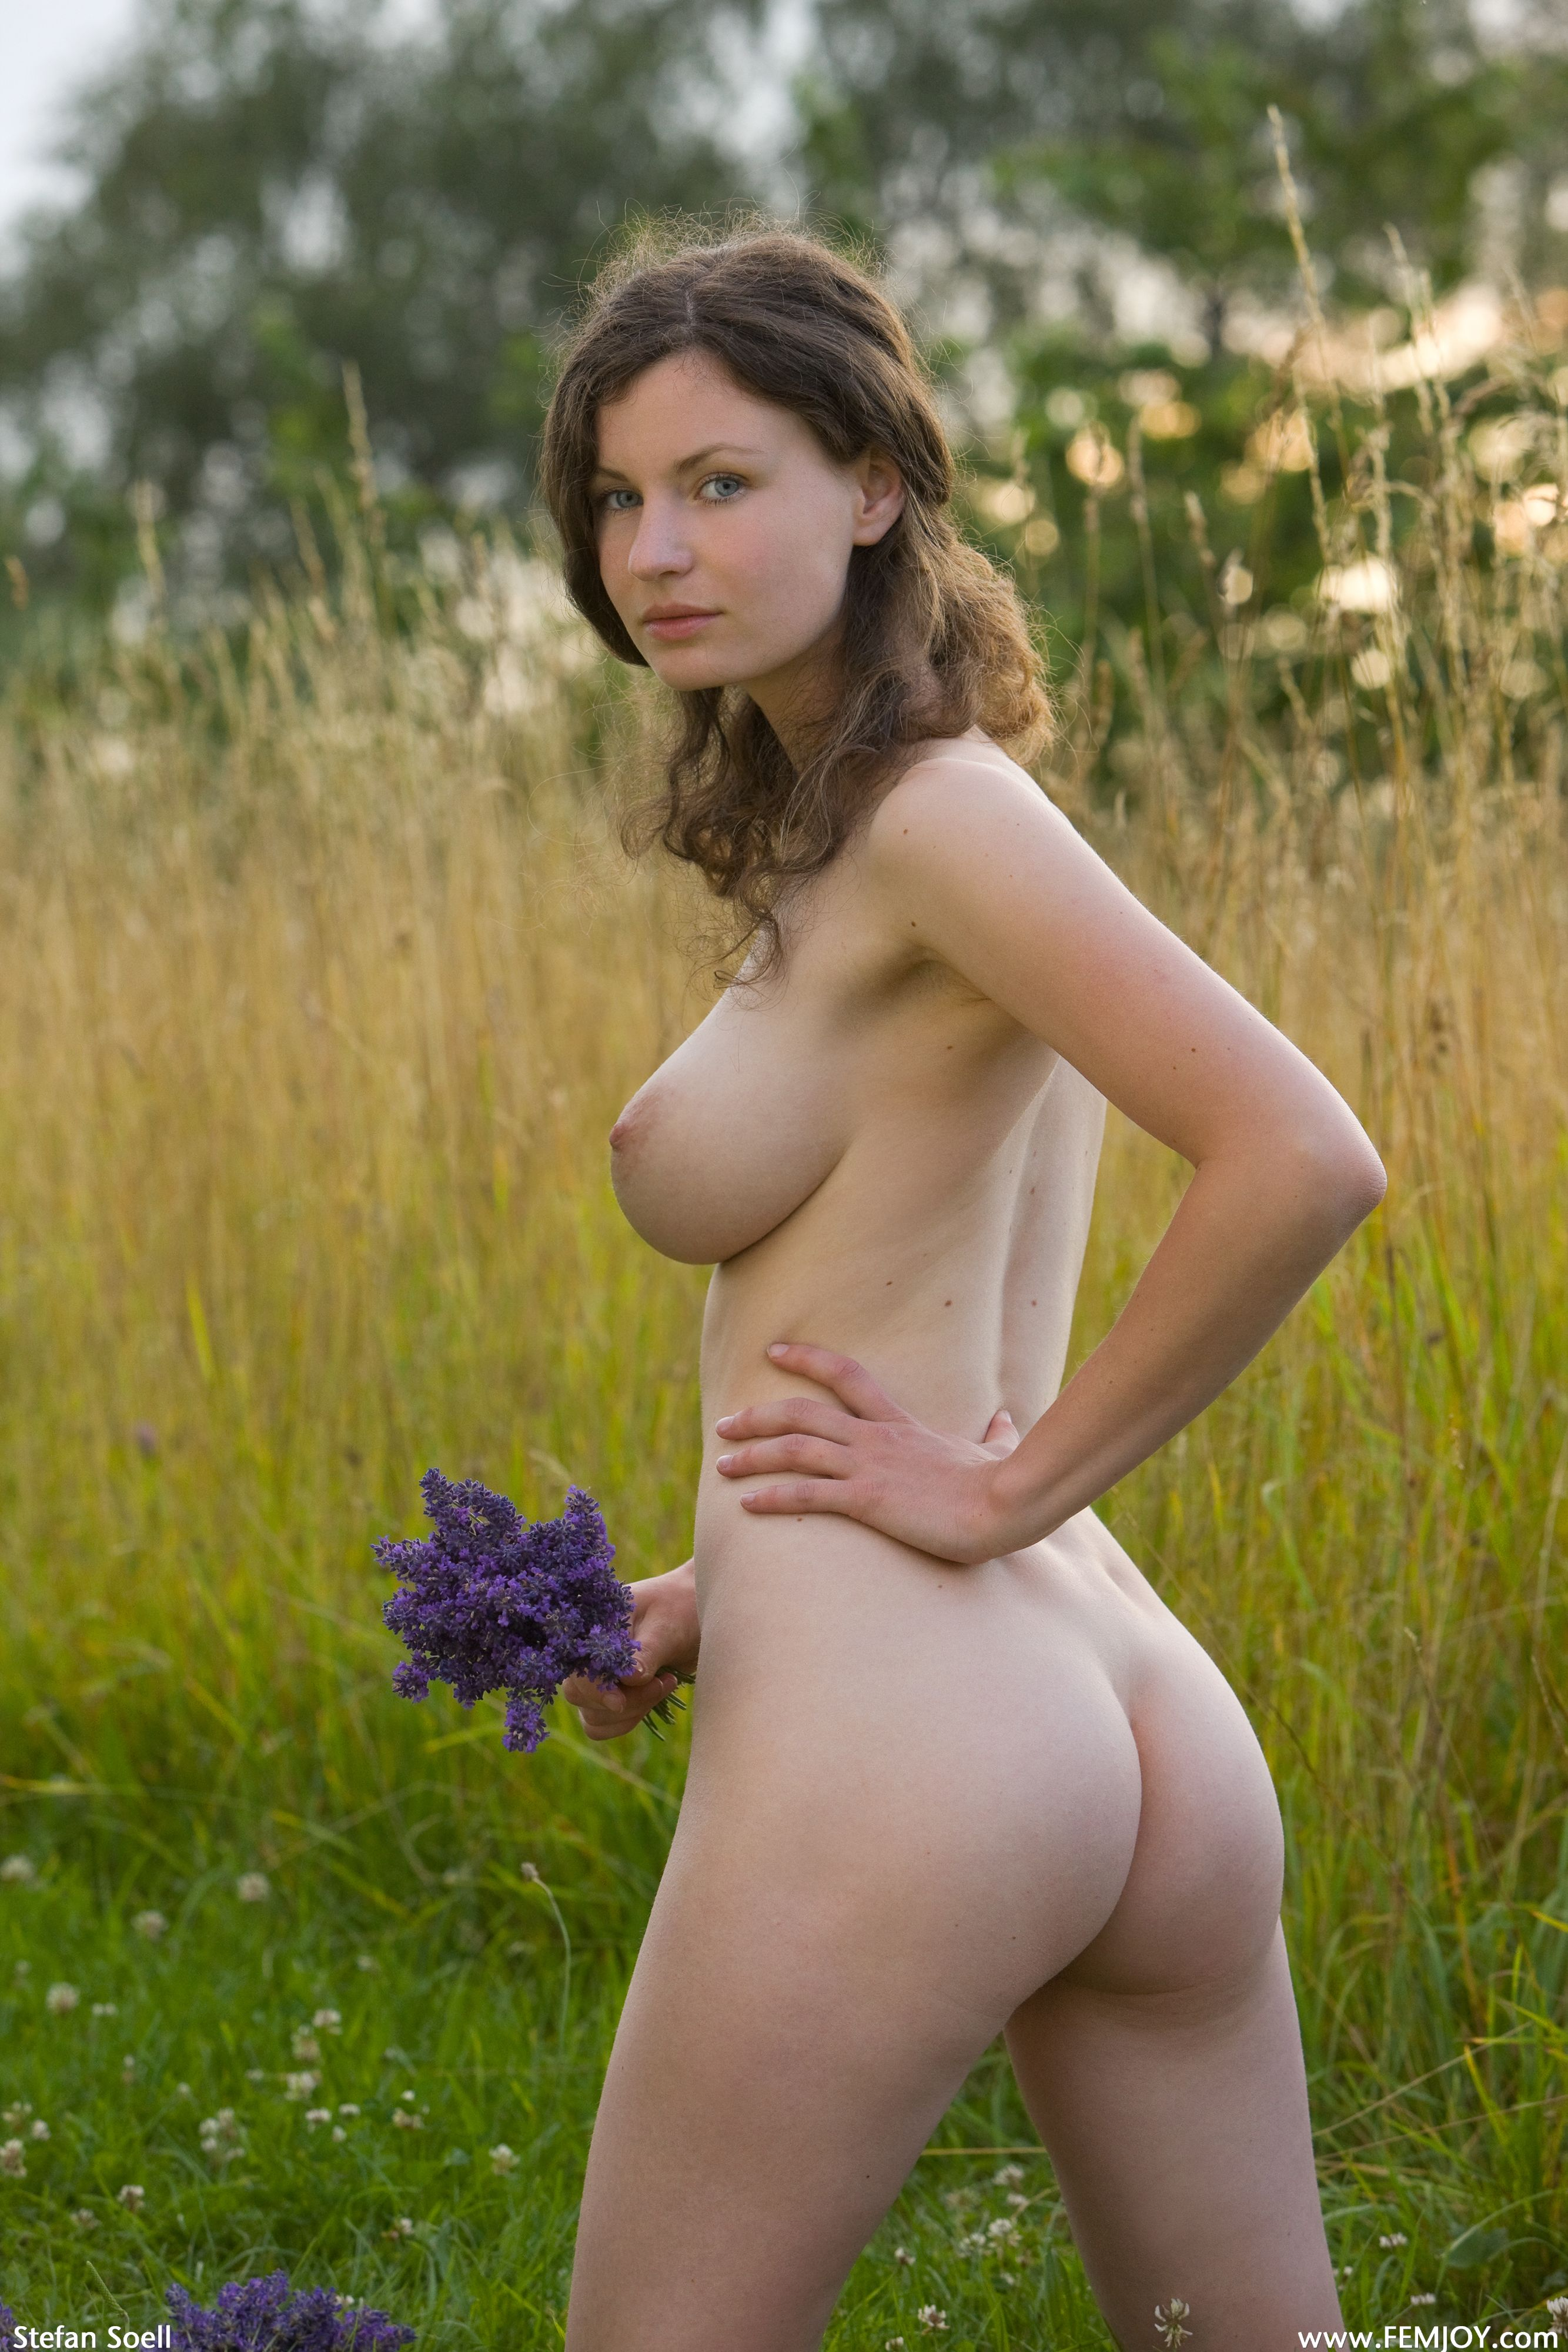 femles naked in public